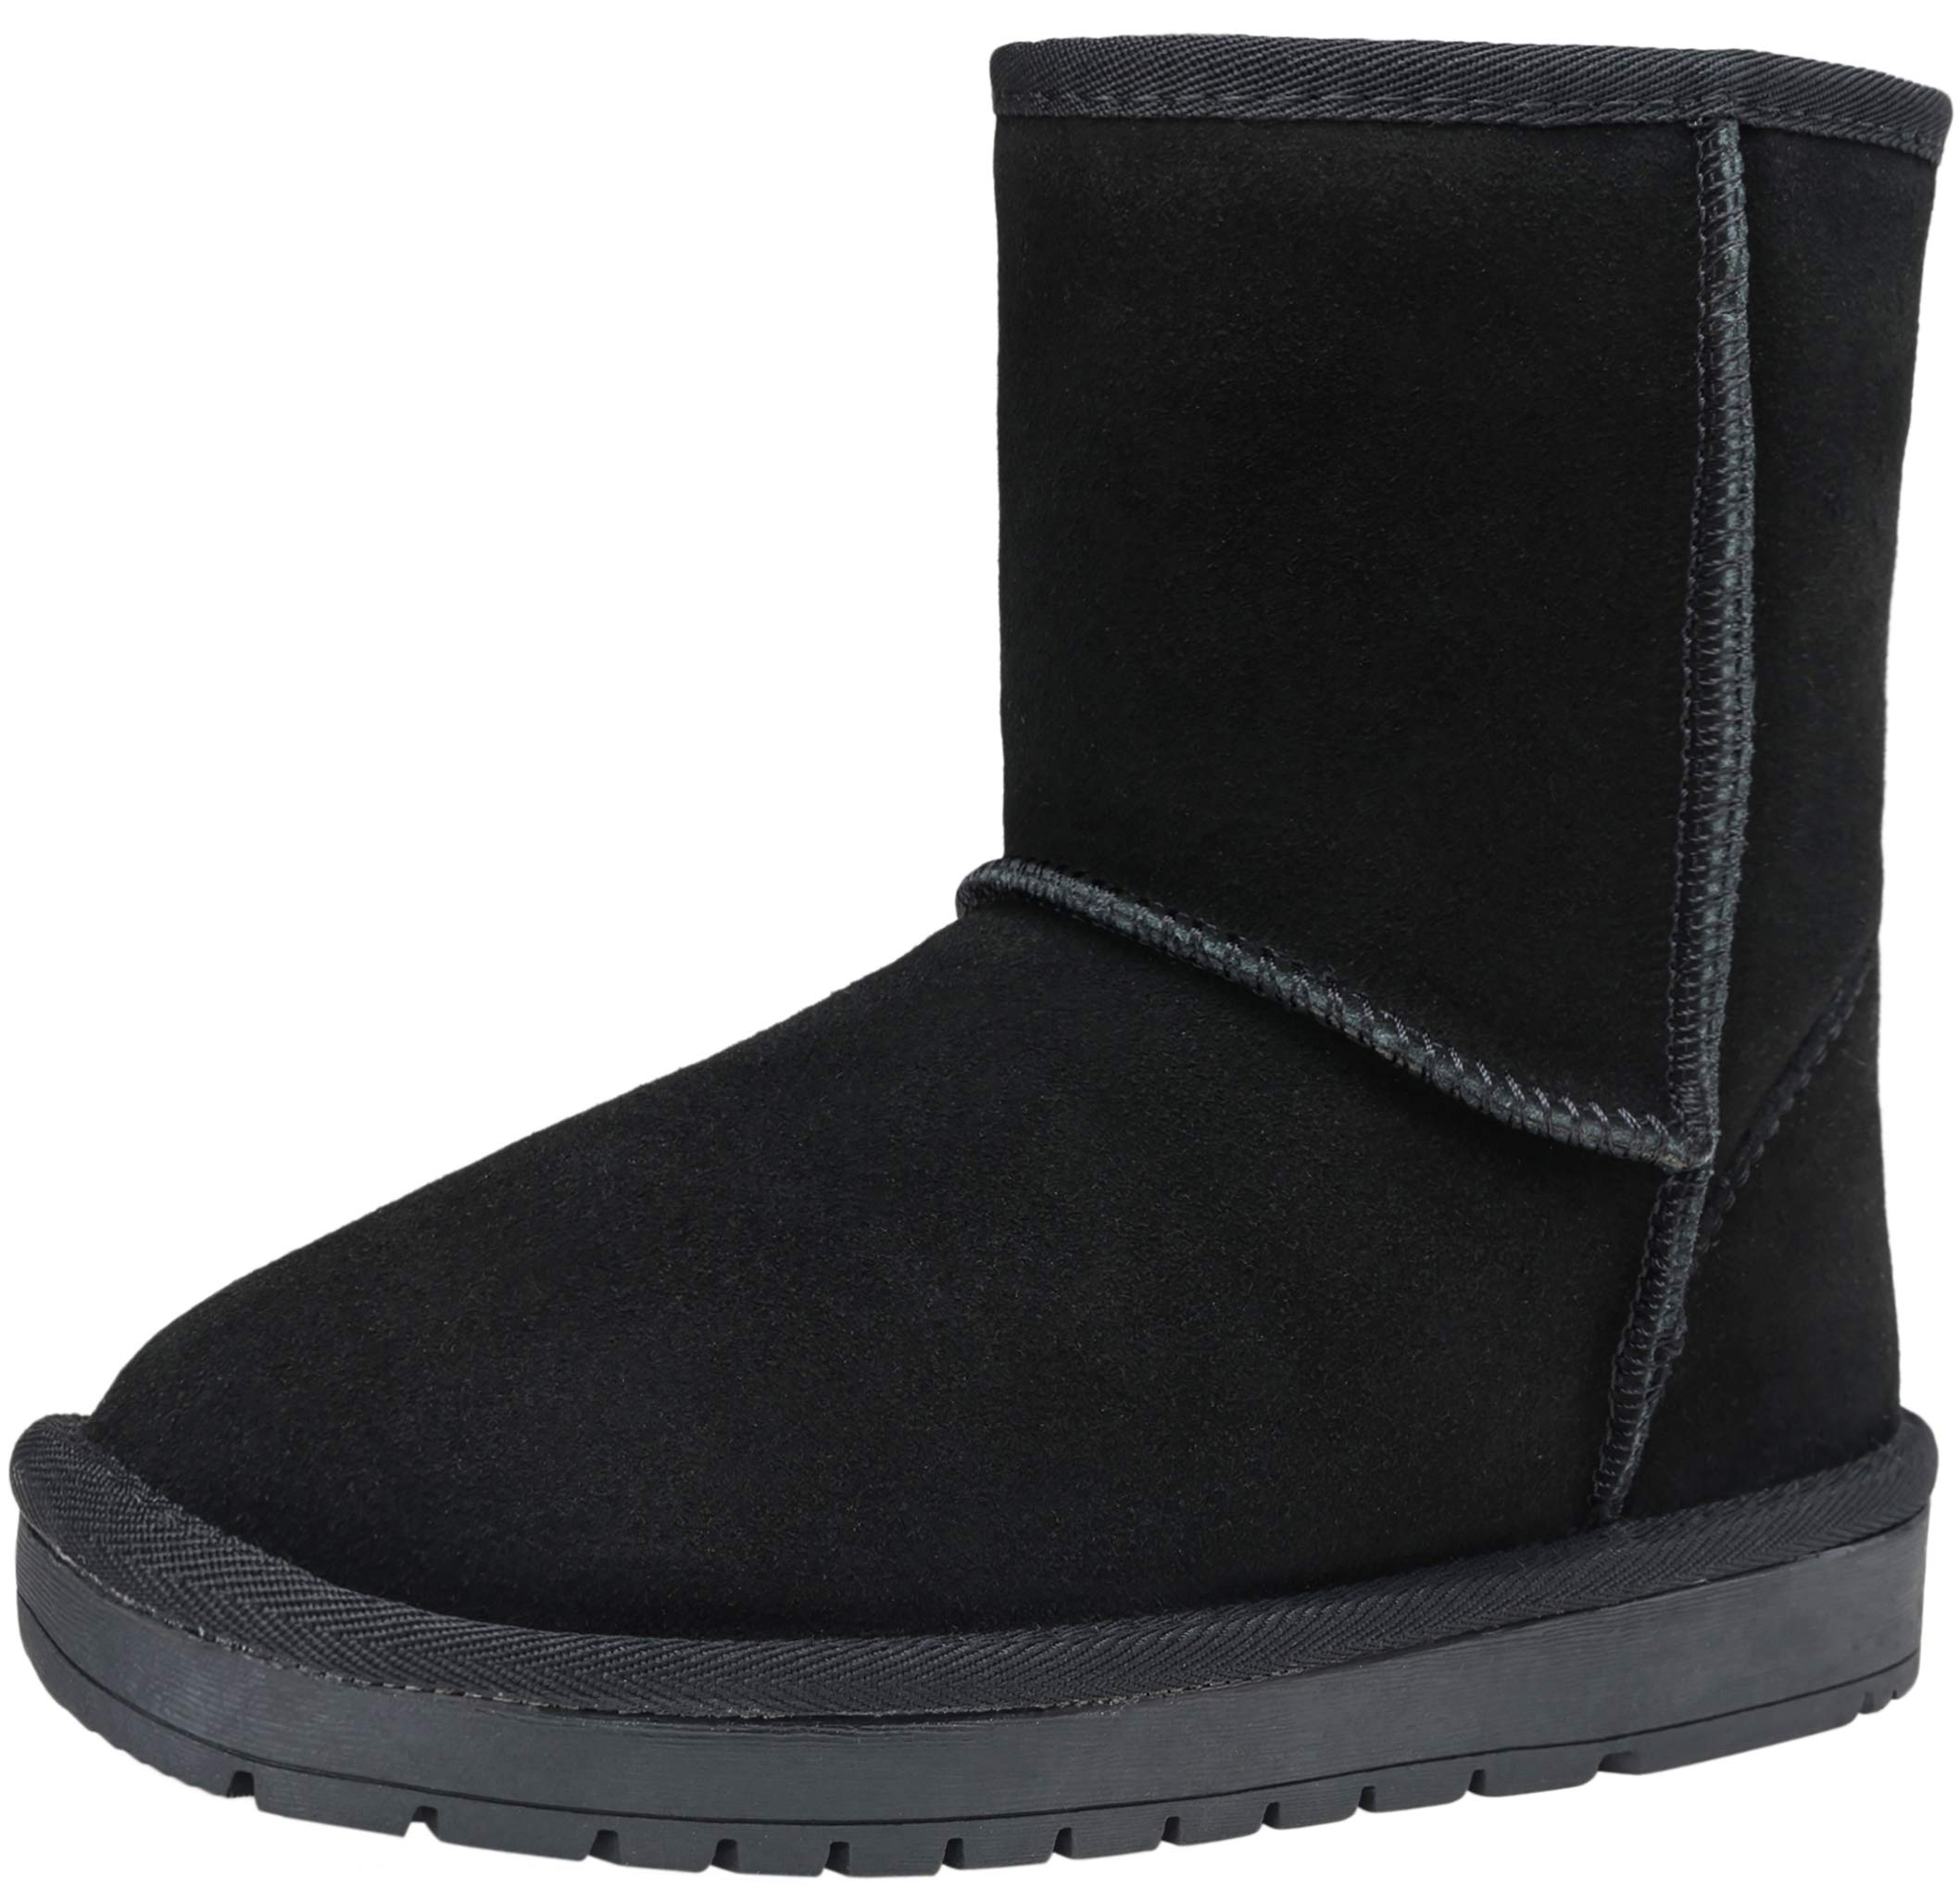 VEPOSE Women's Suede Leather Snow Boots Mid Calf Classic Knee High Warm Winter Booties